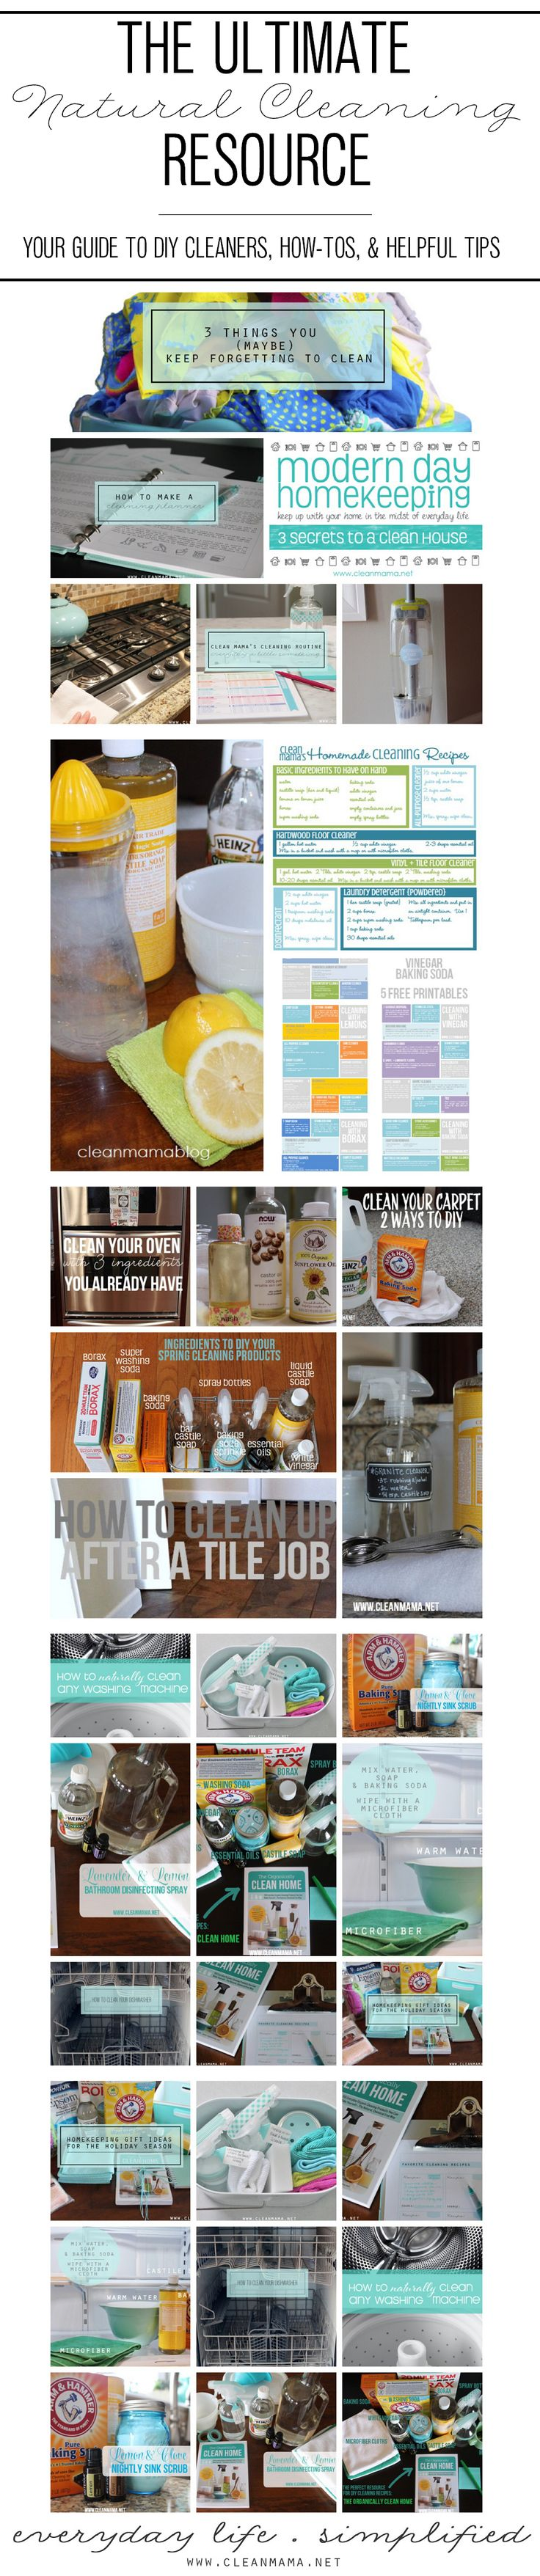 Ready to save yourself $$? Make your own cleaners instead of going commercial. The Ultimate Natural Cleaning Resource - Your Guide to DIY Cleaners, How-Tos, and Helpful Tips via Clean Mama